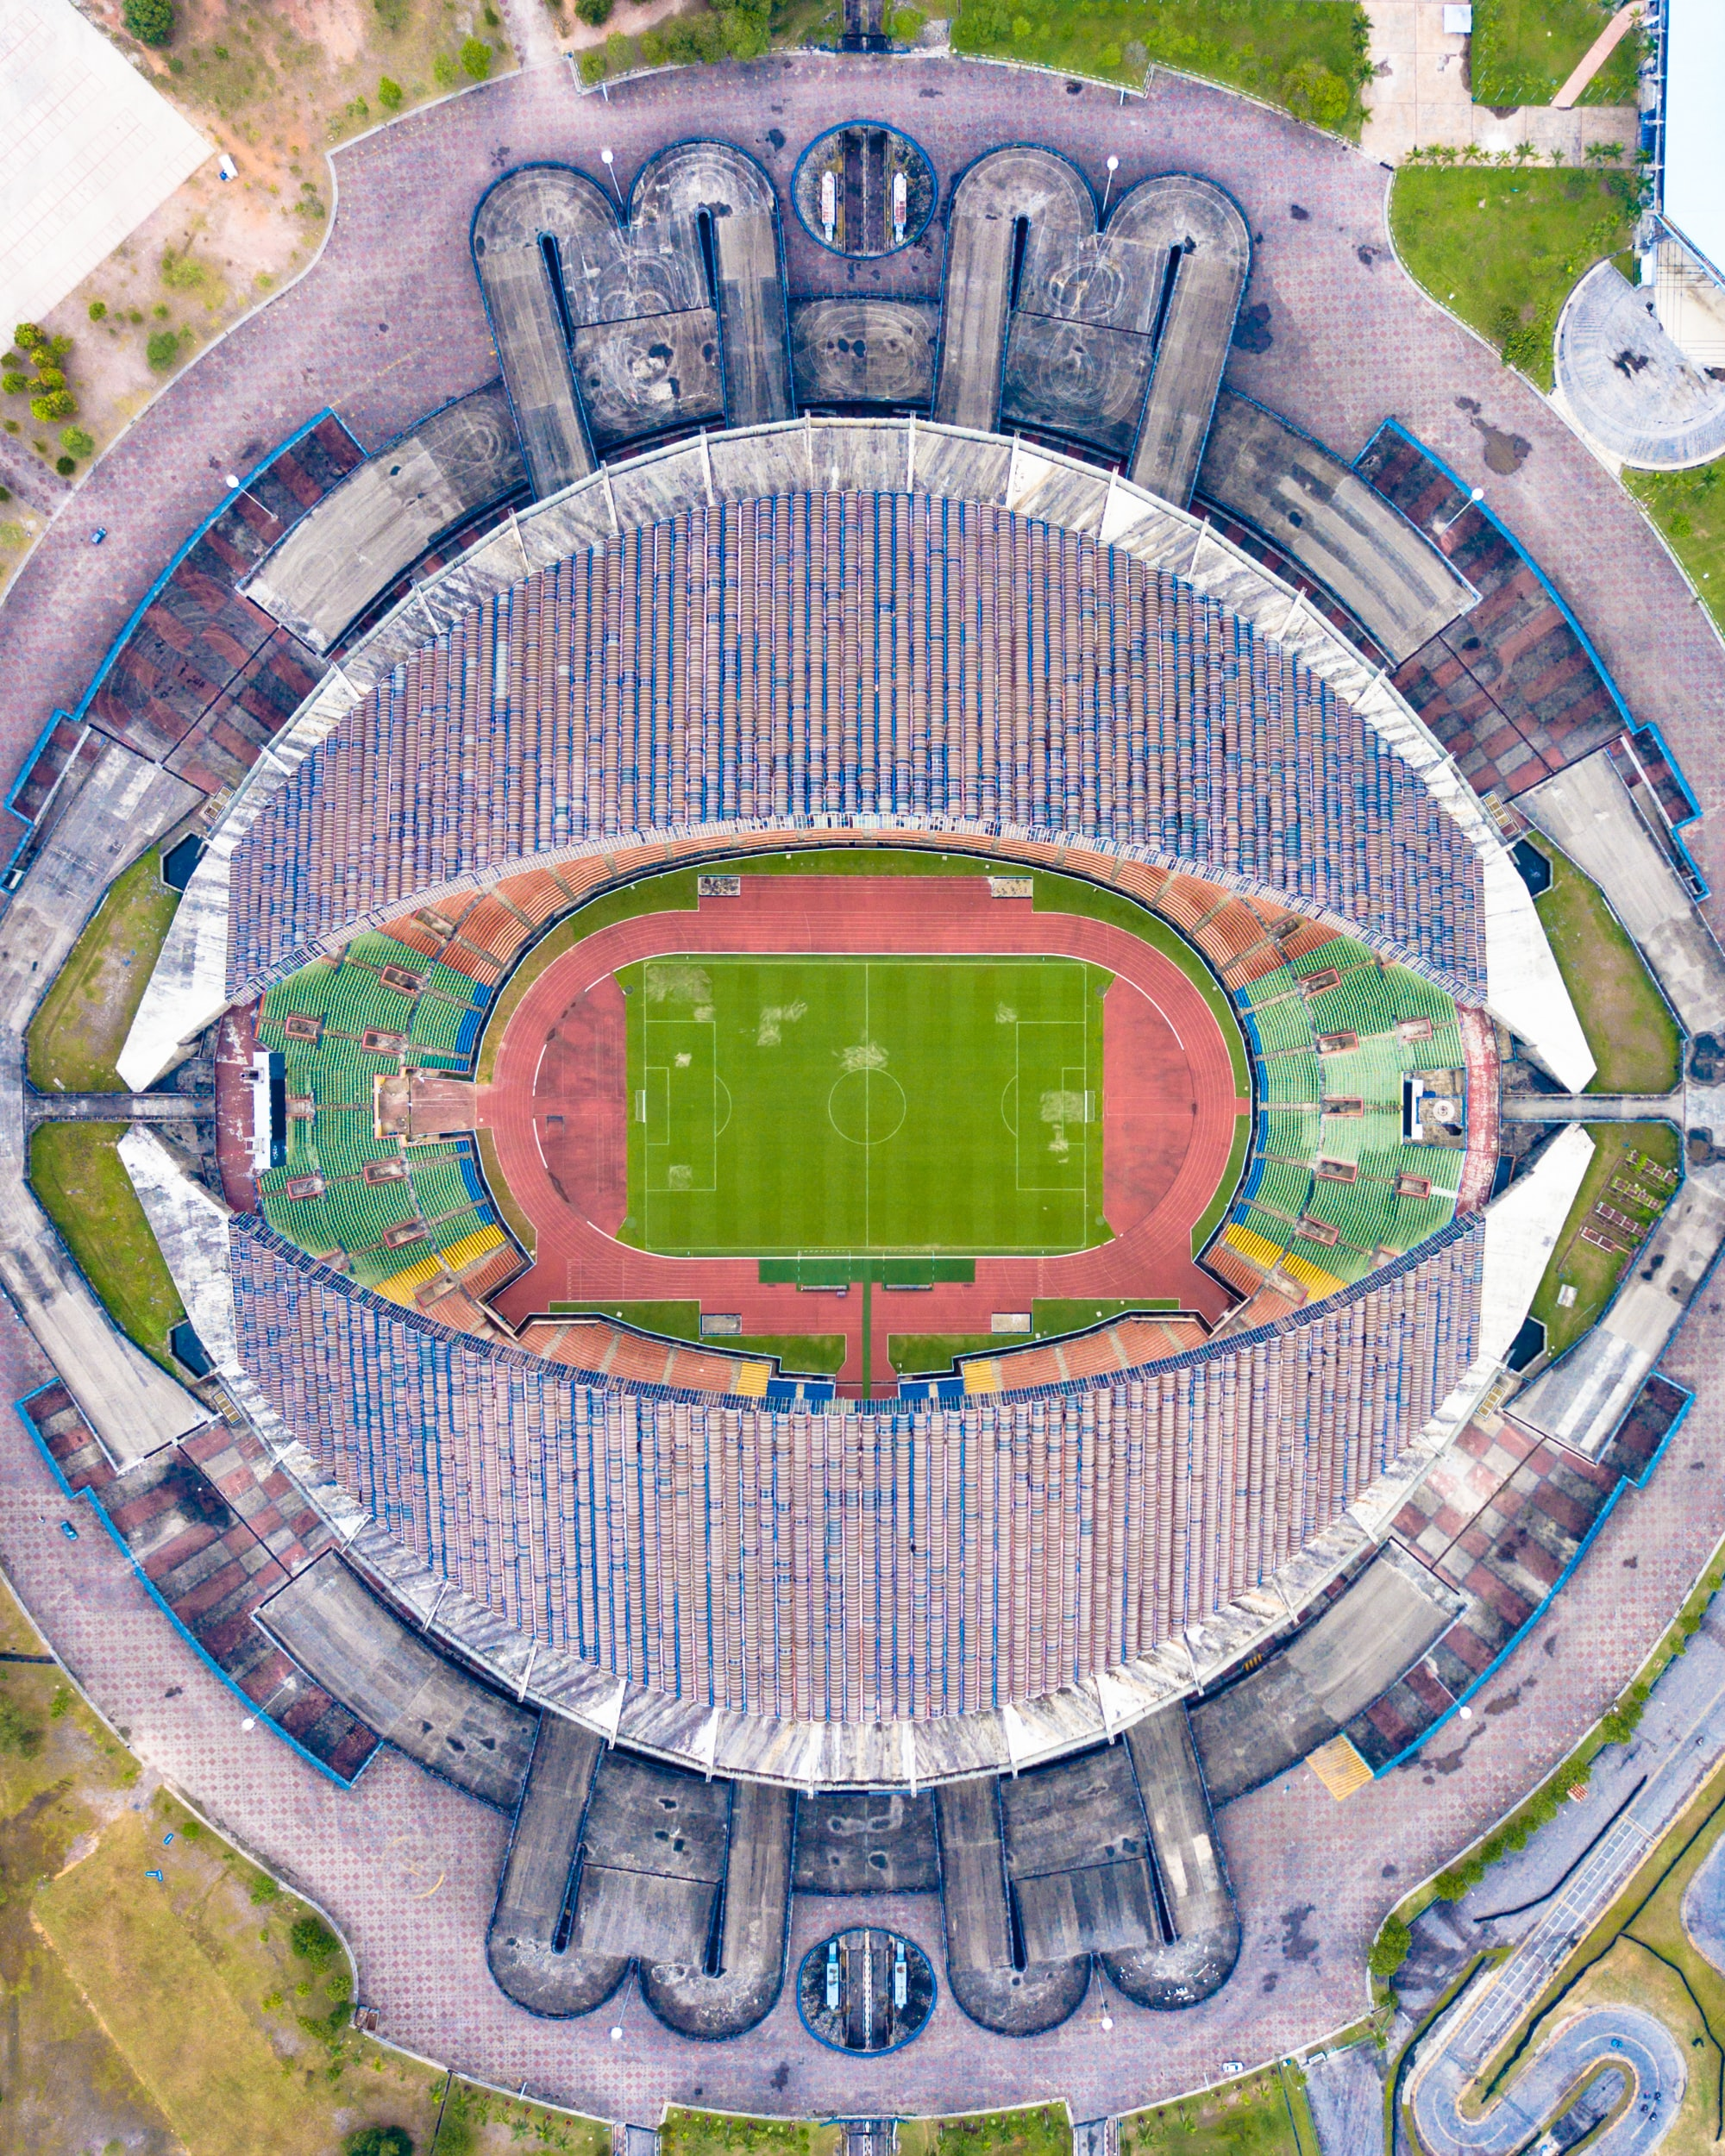 birds eye view of soccer stadium